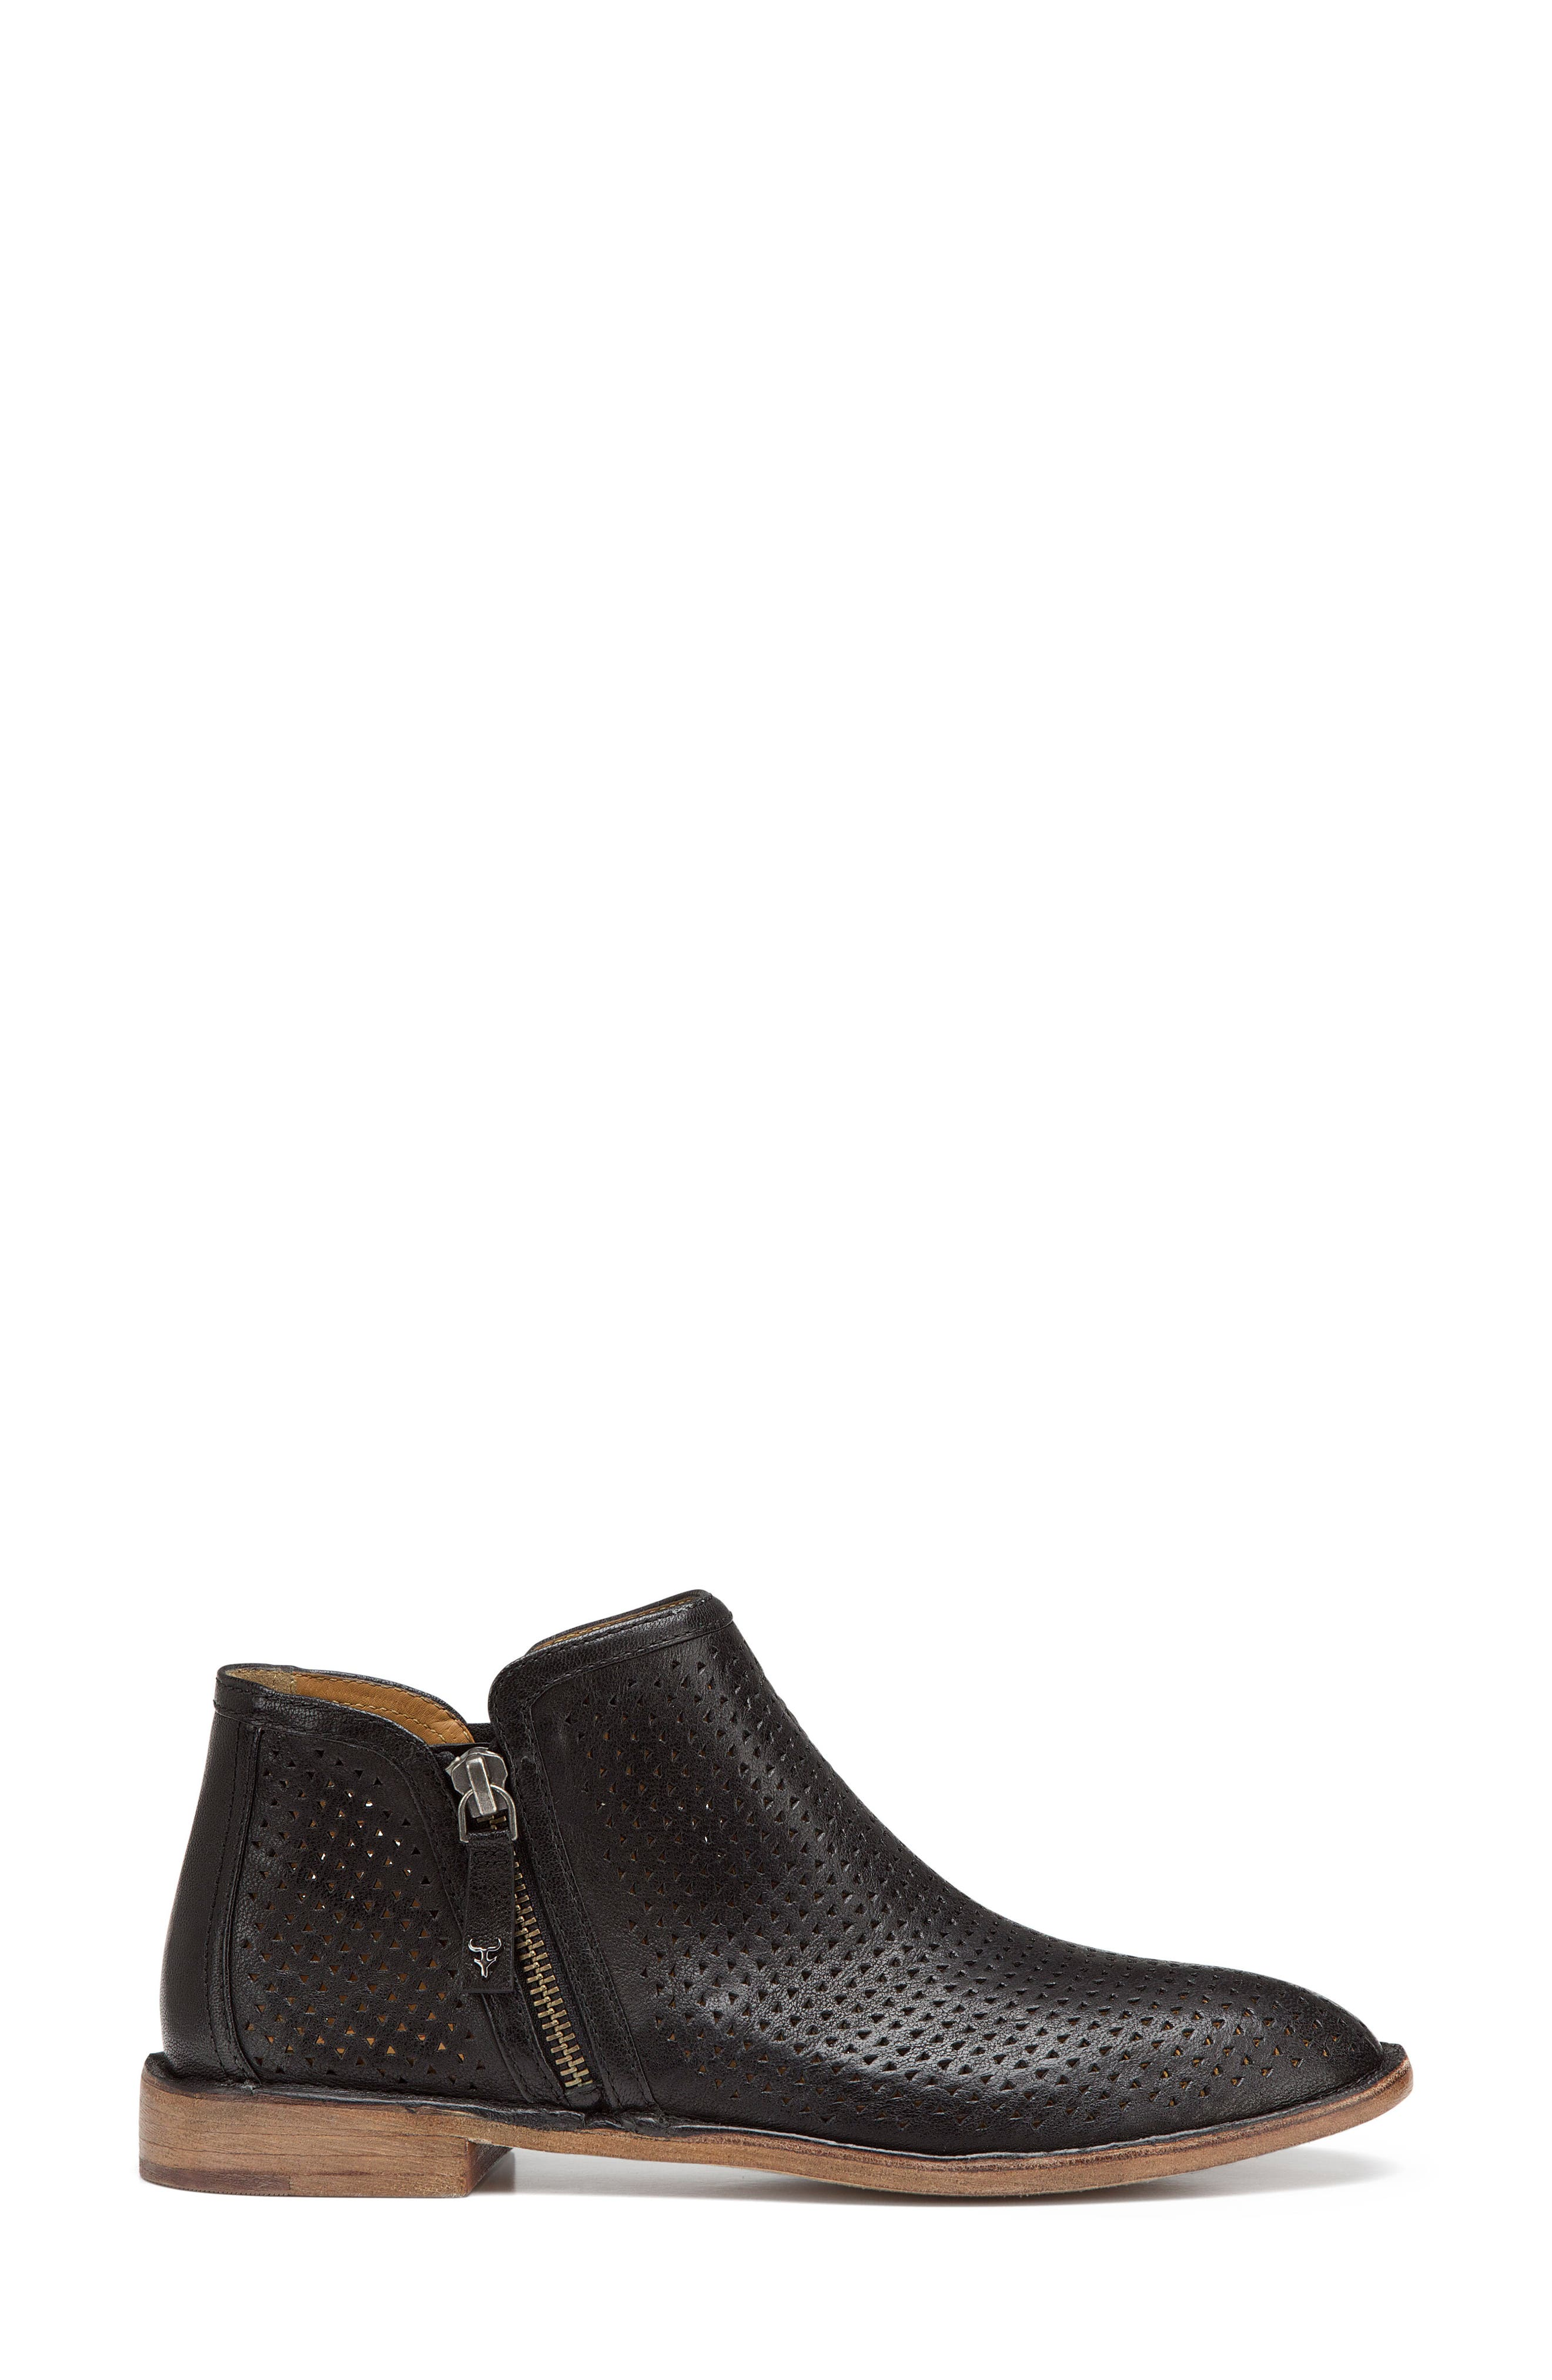 Addison Low Perforated Bootie,                             Alternate thumbnail 3, color,                             BLACK LEATHER